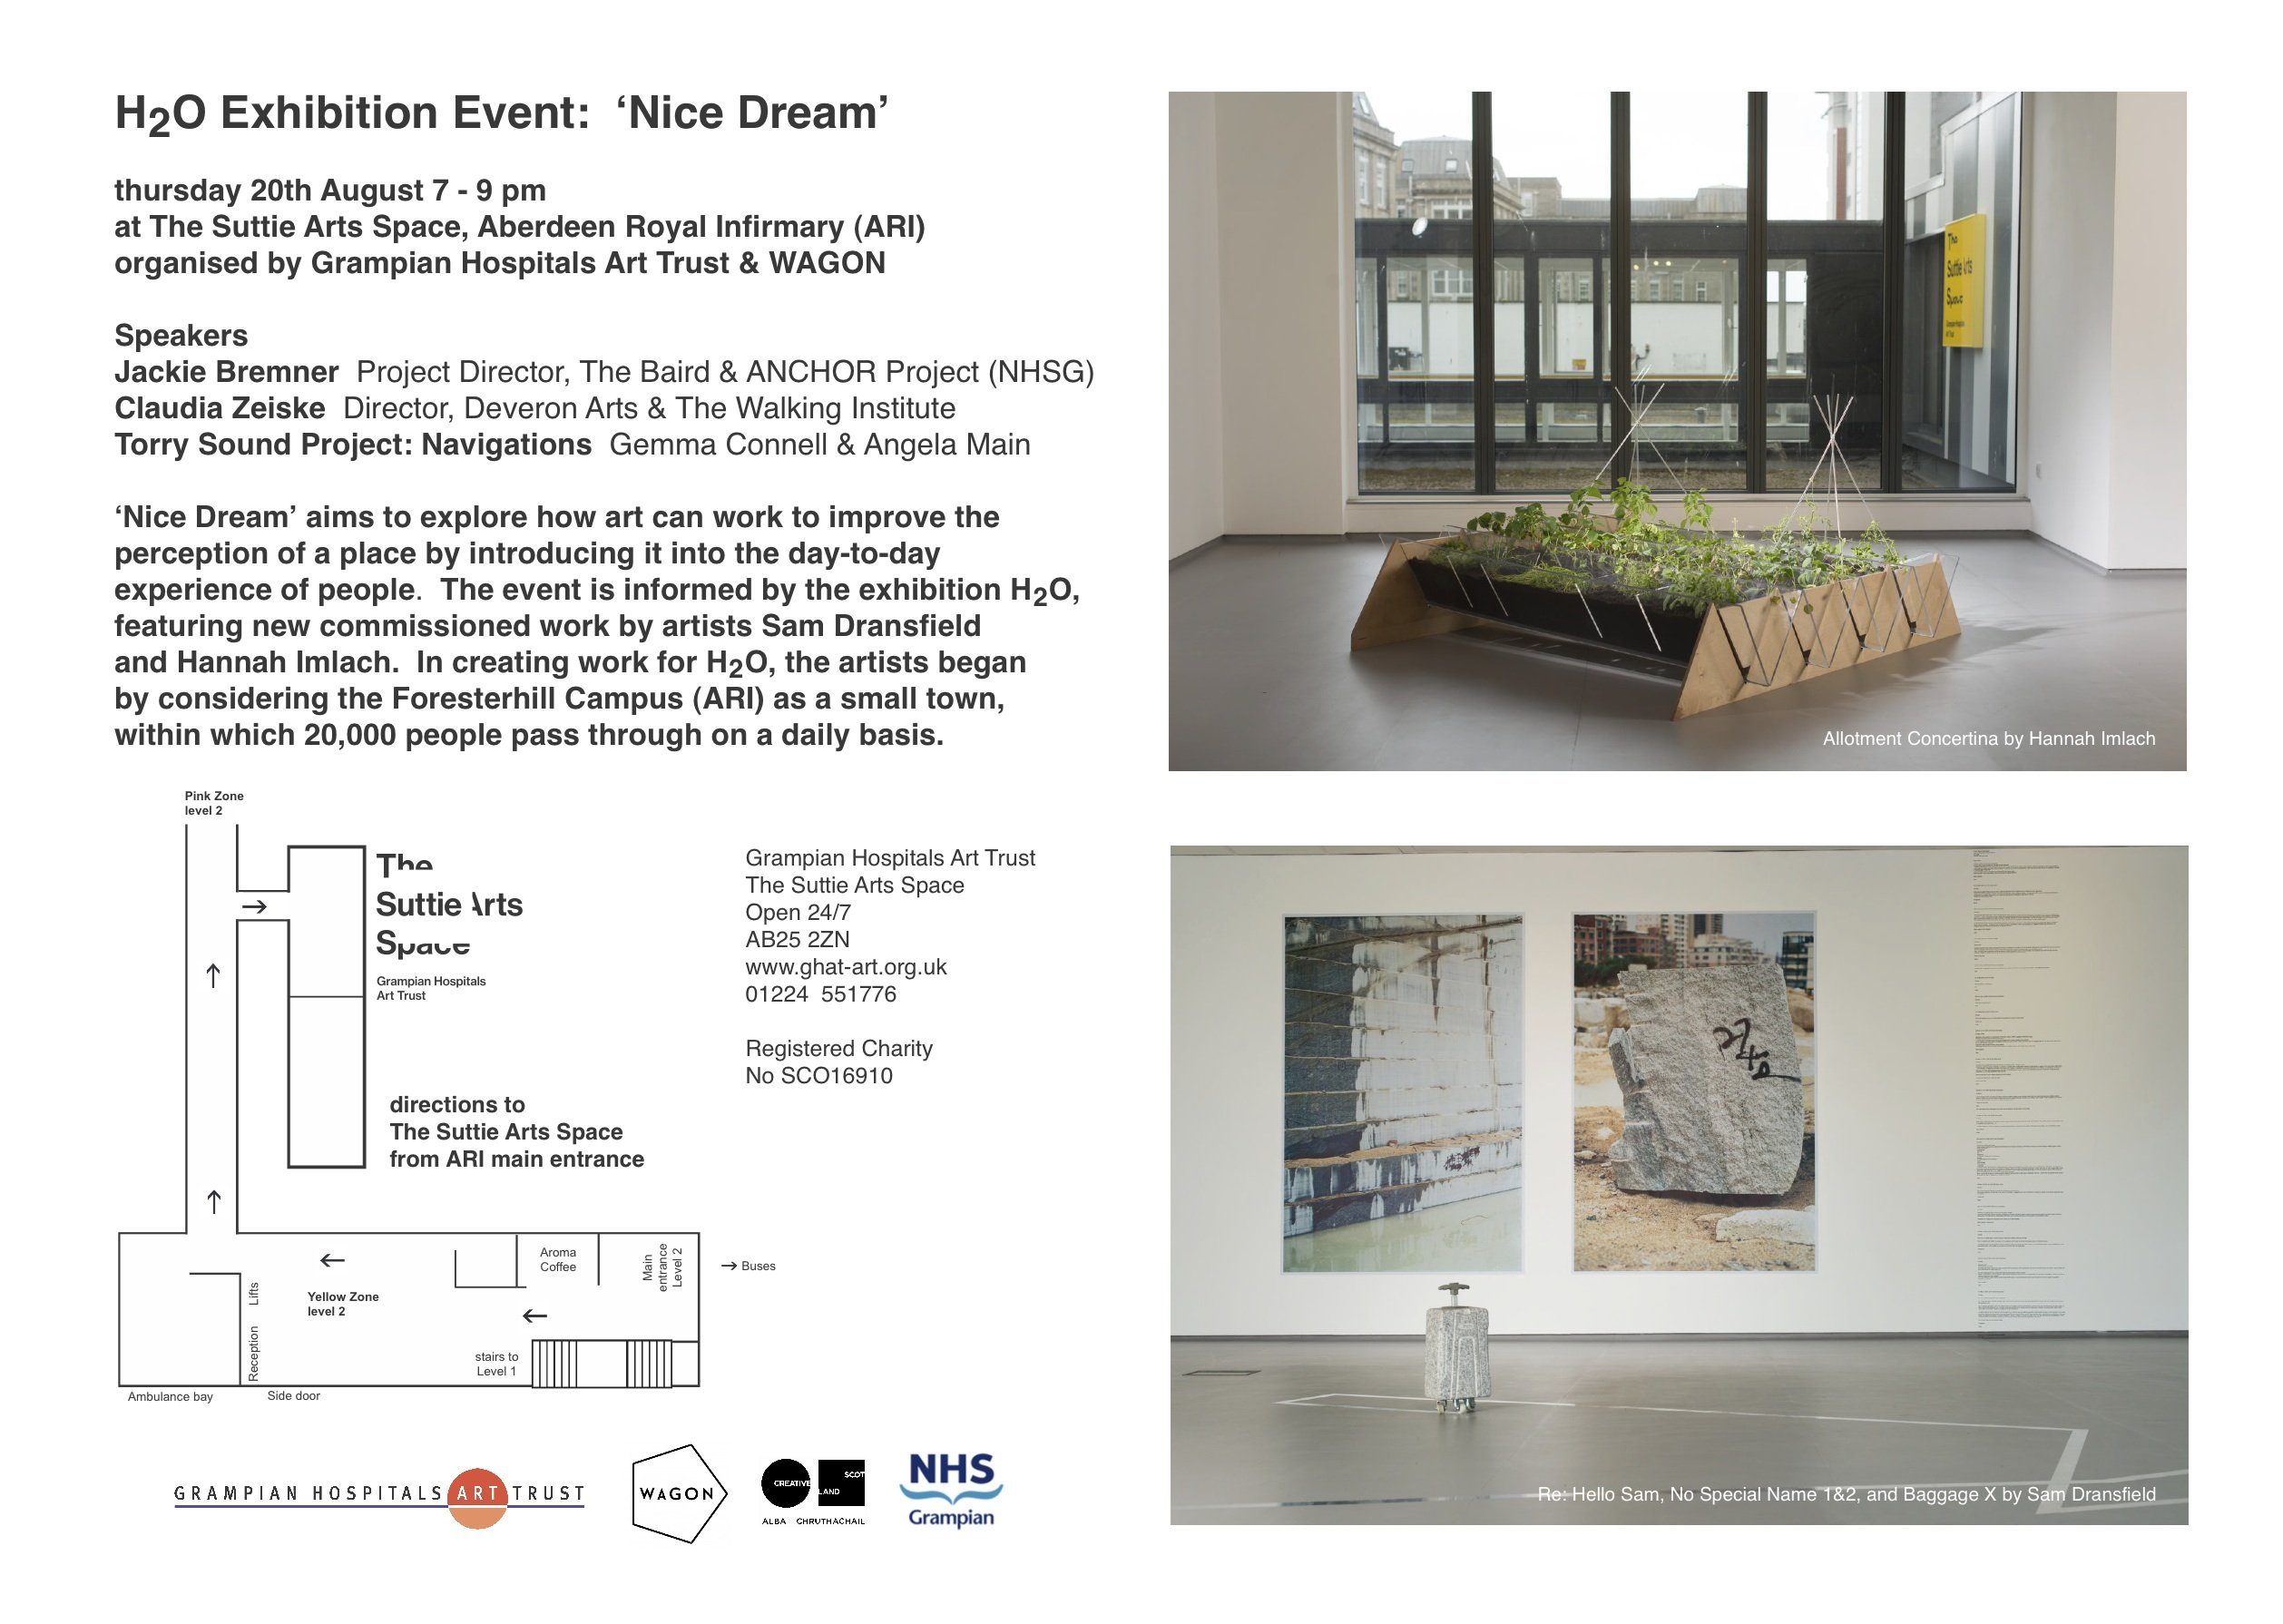 H2O Exhibition Event: 'Nice Dream' Thursday 20th August 7-9pm at The Suttie Arts Space